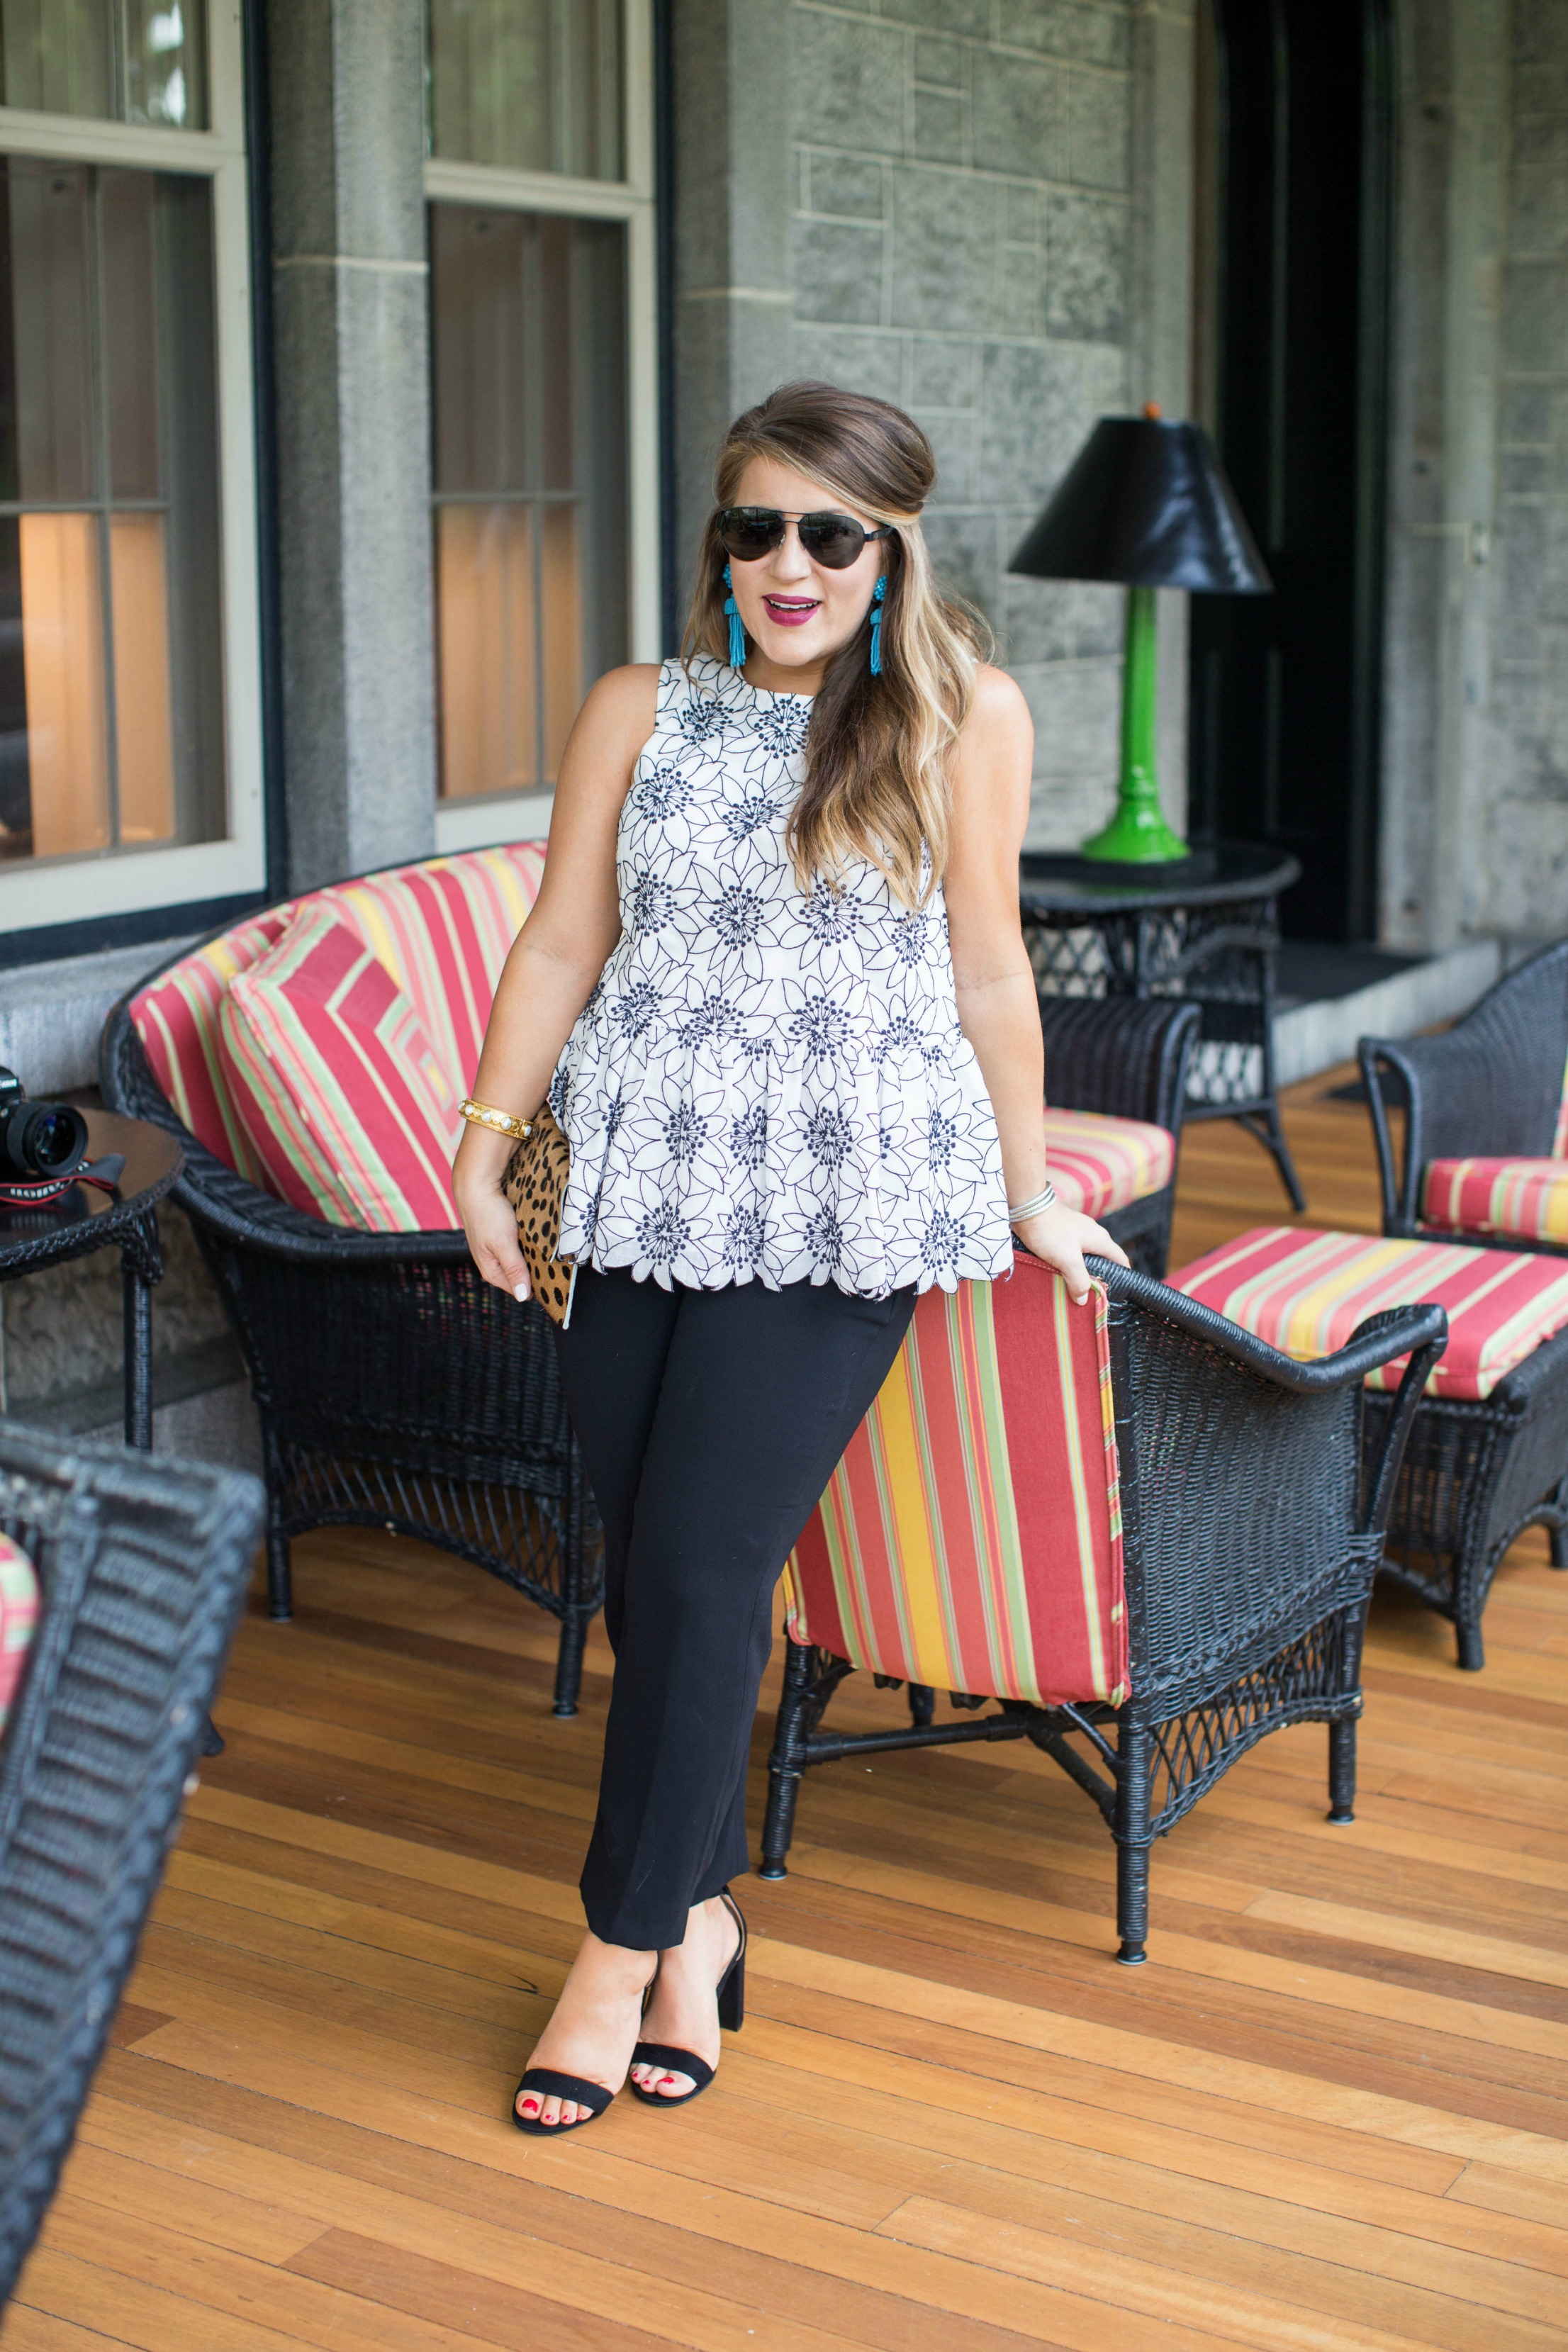 Black and White Floral Peplum Top by NC fashion blogger Coffee Beans and Bobby Pins